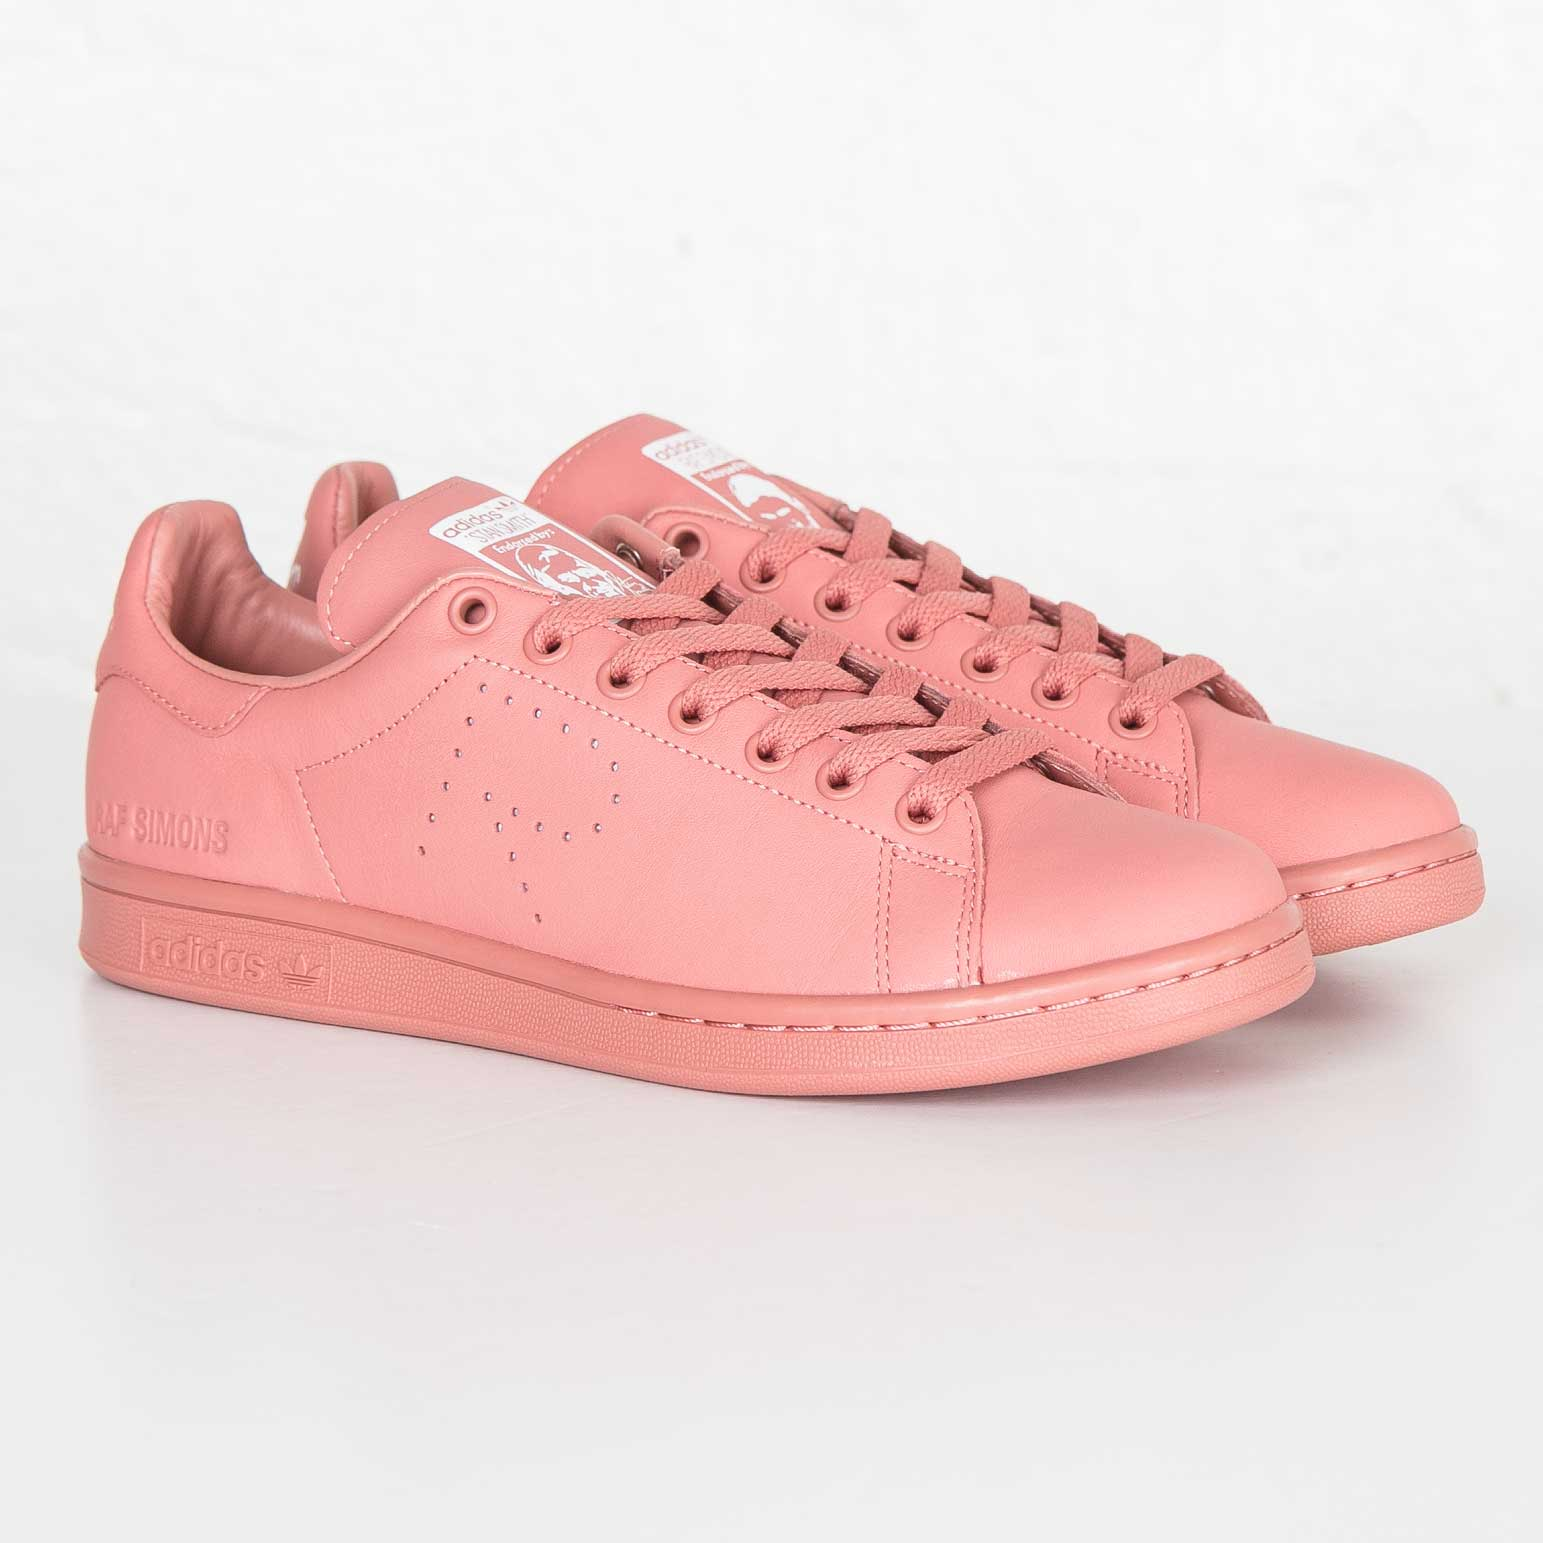 release date 551d4 c11d5 adidas Raf Simons Stan Smith